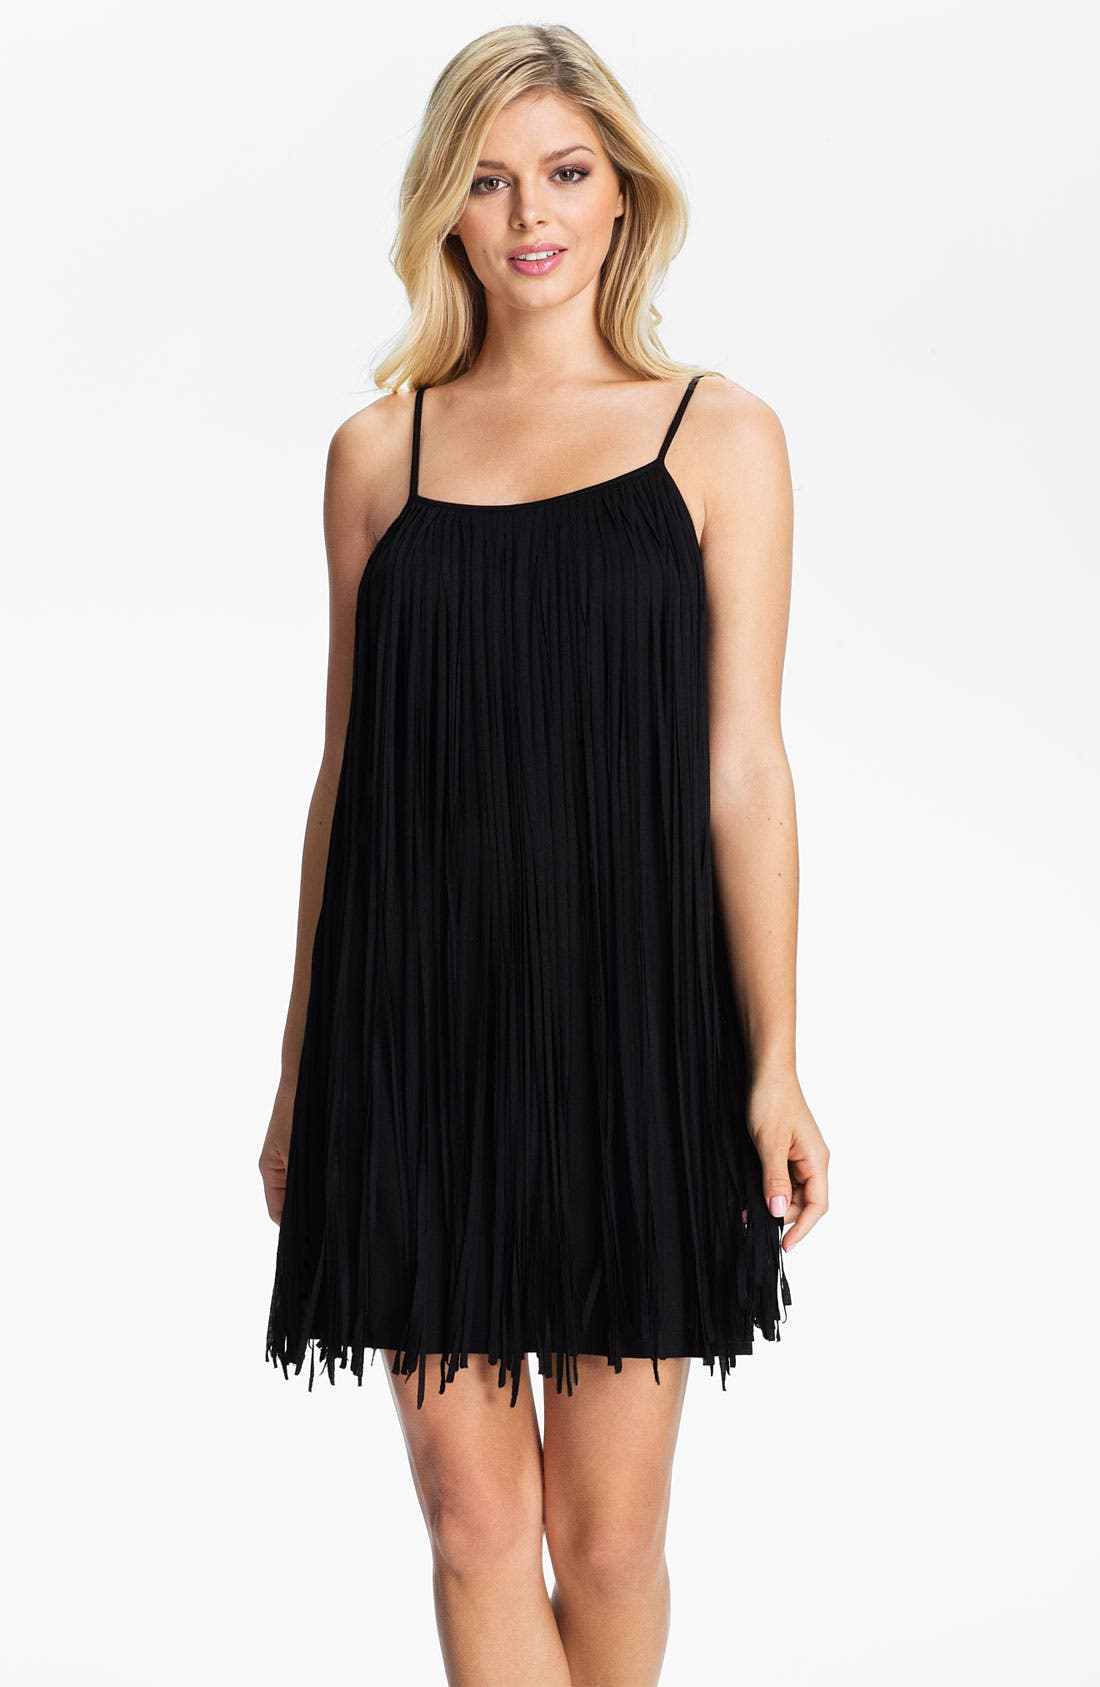 Alternate Image 1 Selected - Badgley Mischka Fringed Cover-Up Dress